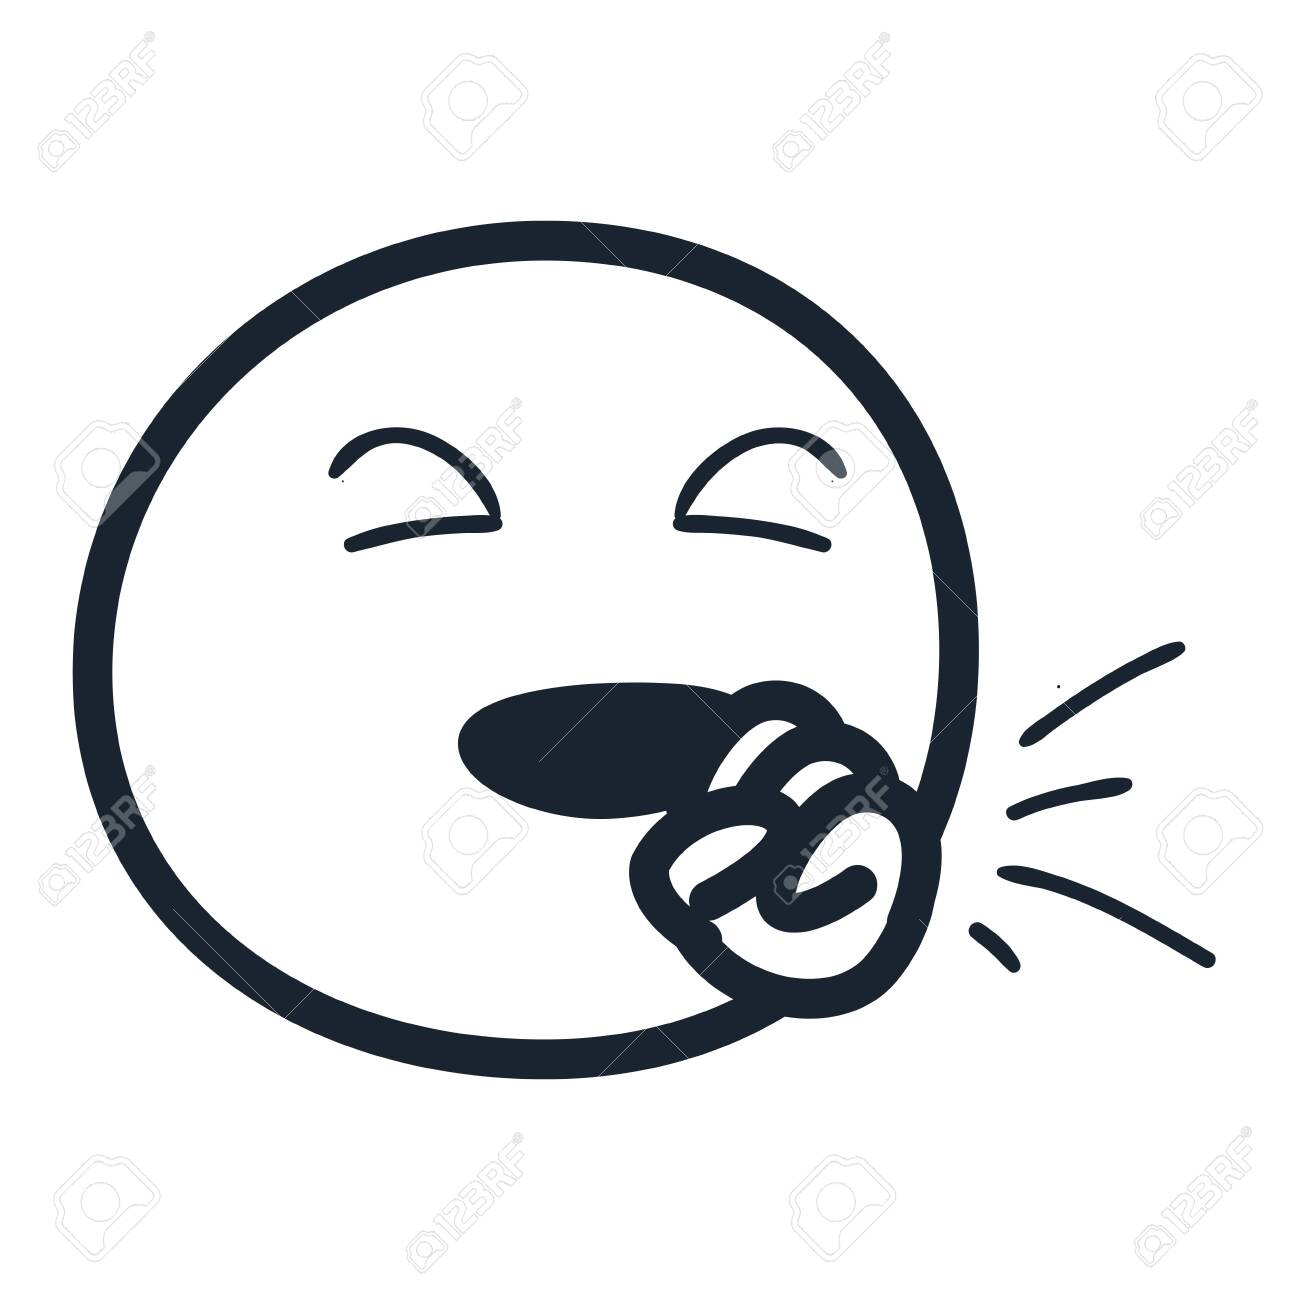 emoji with dry cough line style icon design cartoon expression stock photo picture and royalty free image image 146766511 stock illustration